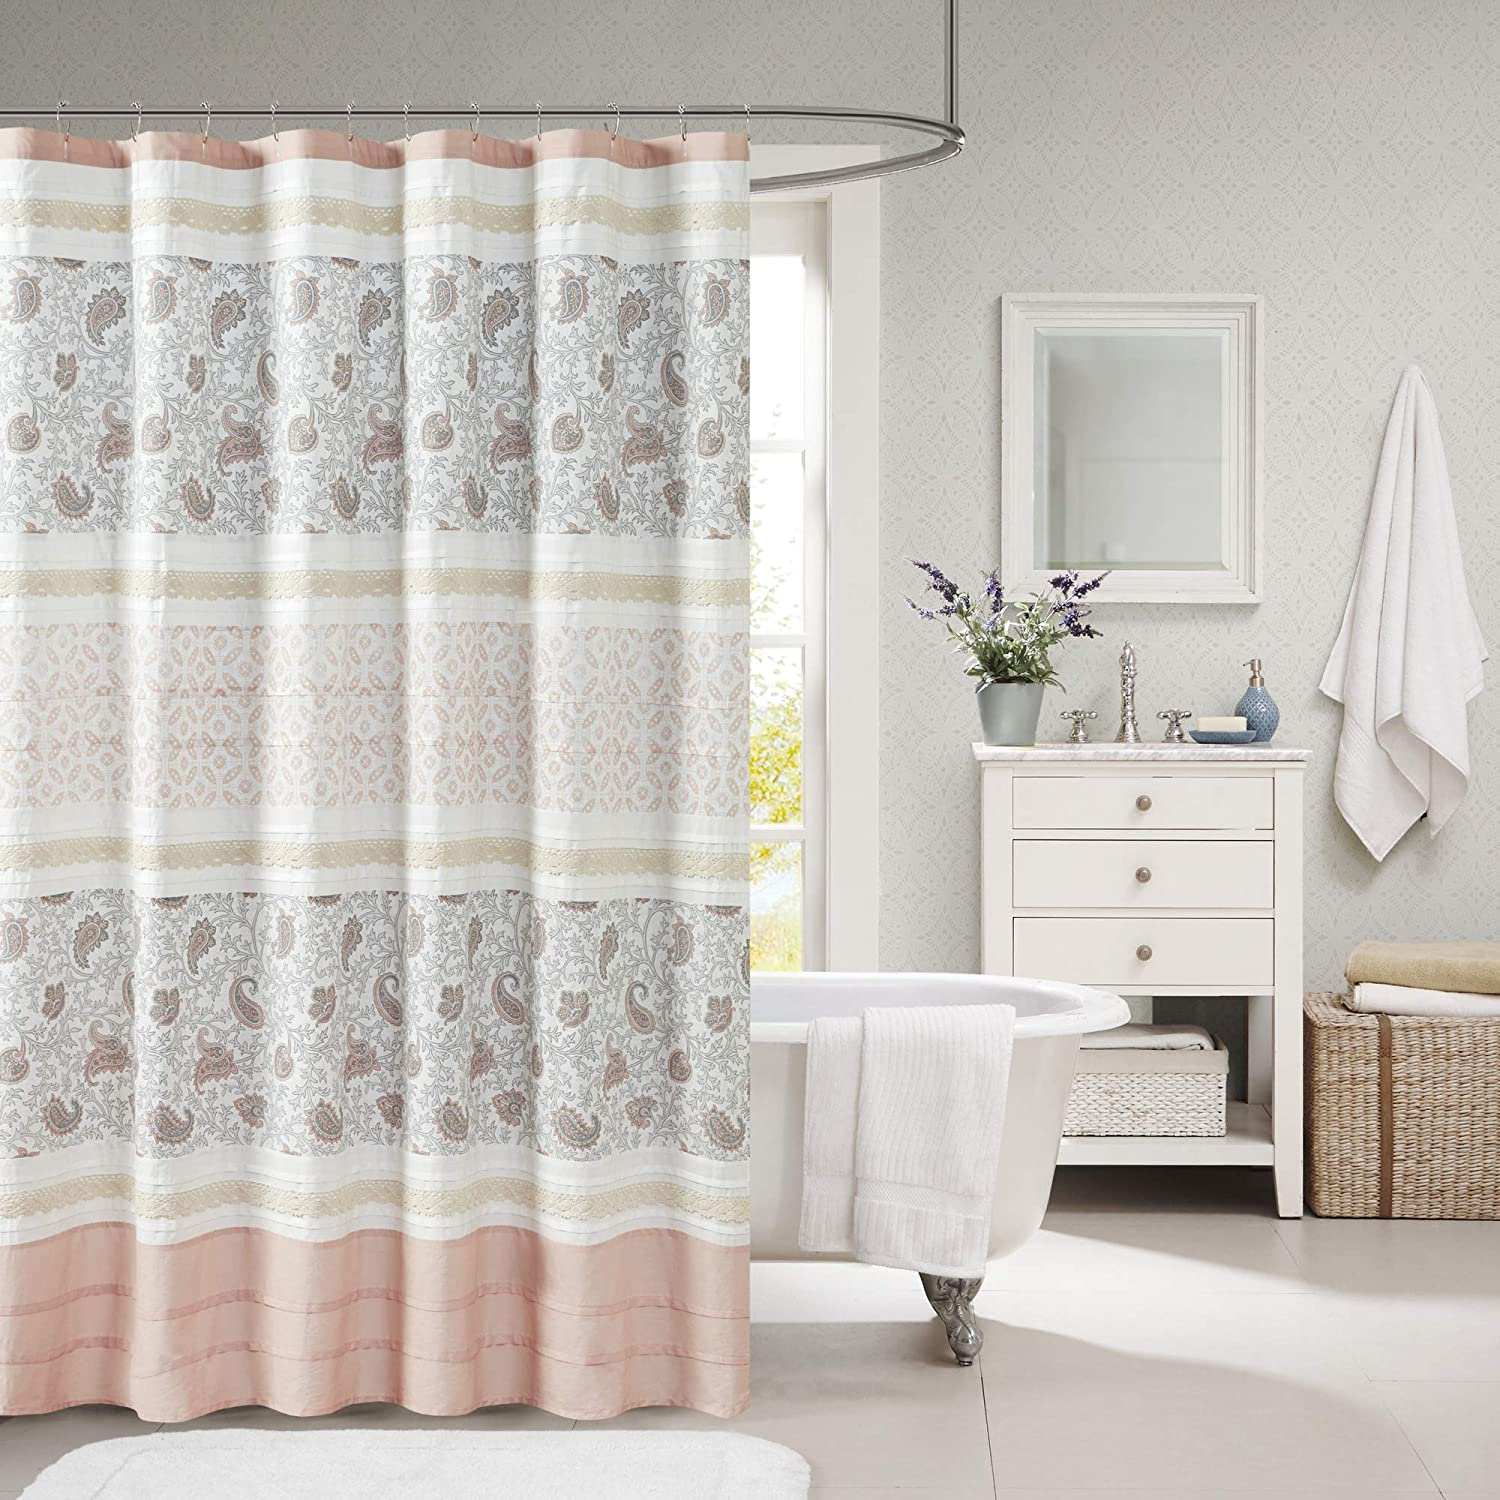 Madison Park Dawn Cotton Fabric Shower Curtain Pintucked, Paisley Design Machine Washable Shabby Chic Modern Home Bathroom Décor Bathtub Privacy Screen, 72x72, Blush